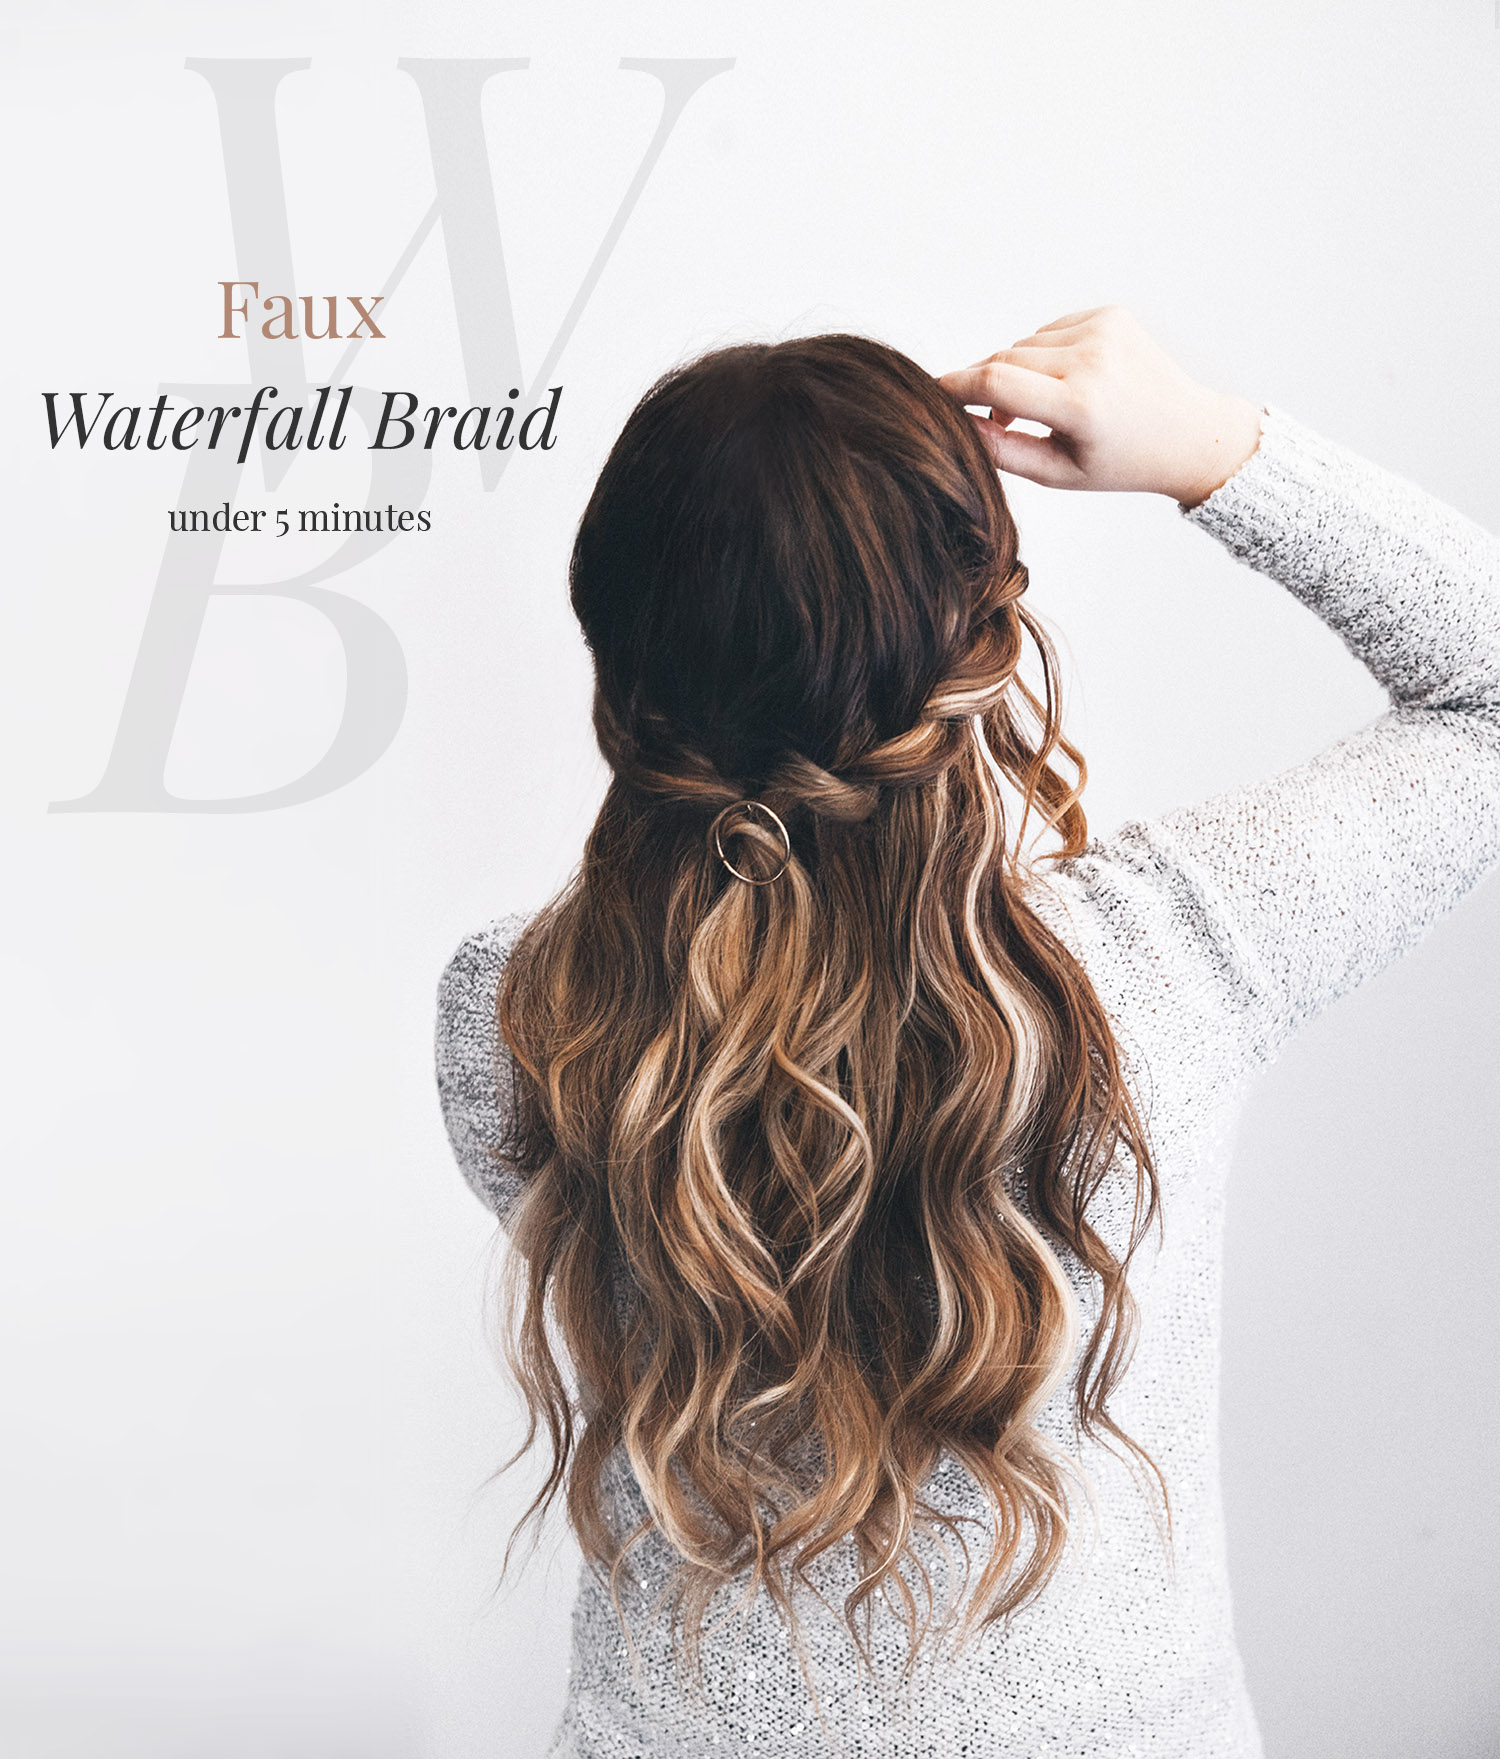 DIY: Faux Waterfall Braid Tutorial